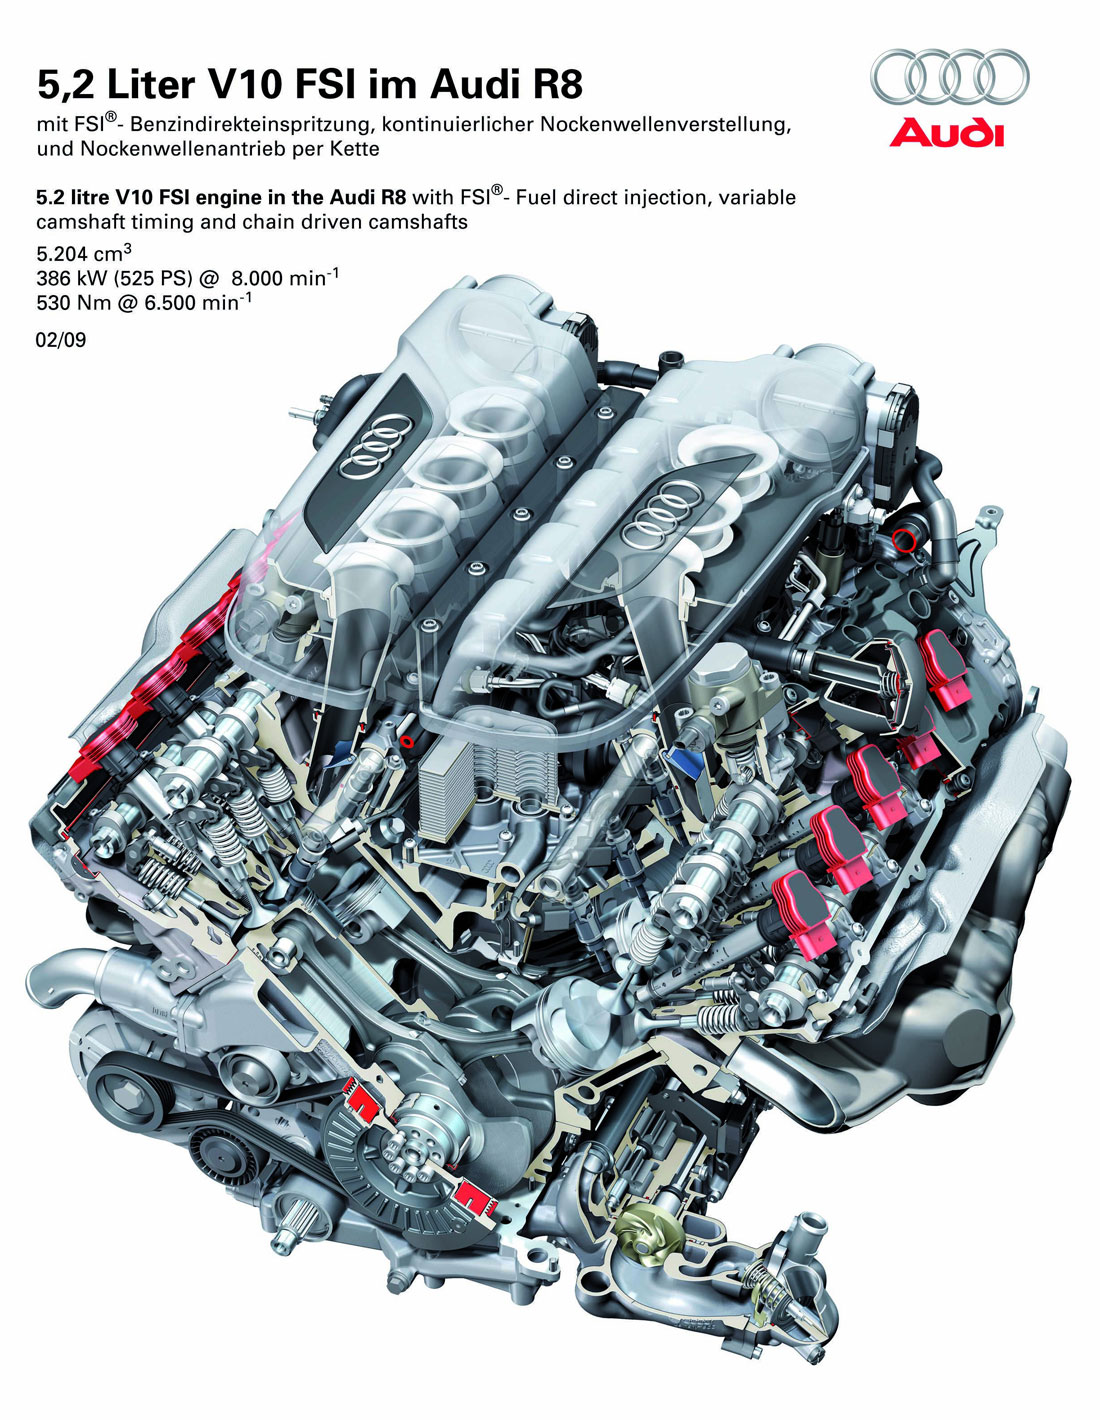 Audi R8 Engine Diagram Manual Guide Wiring For Tt V10 2010 Cartype A6